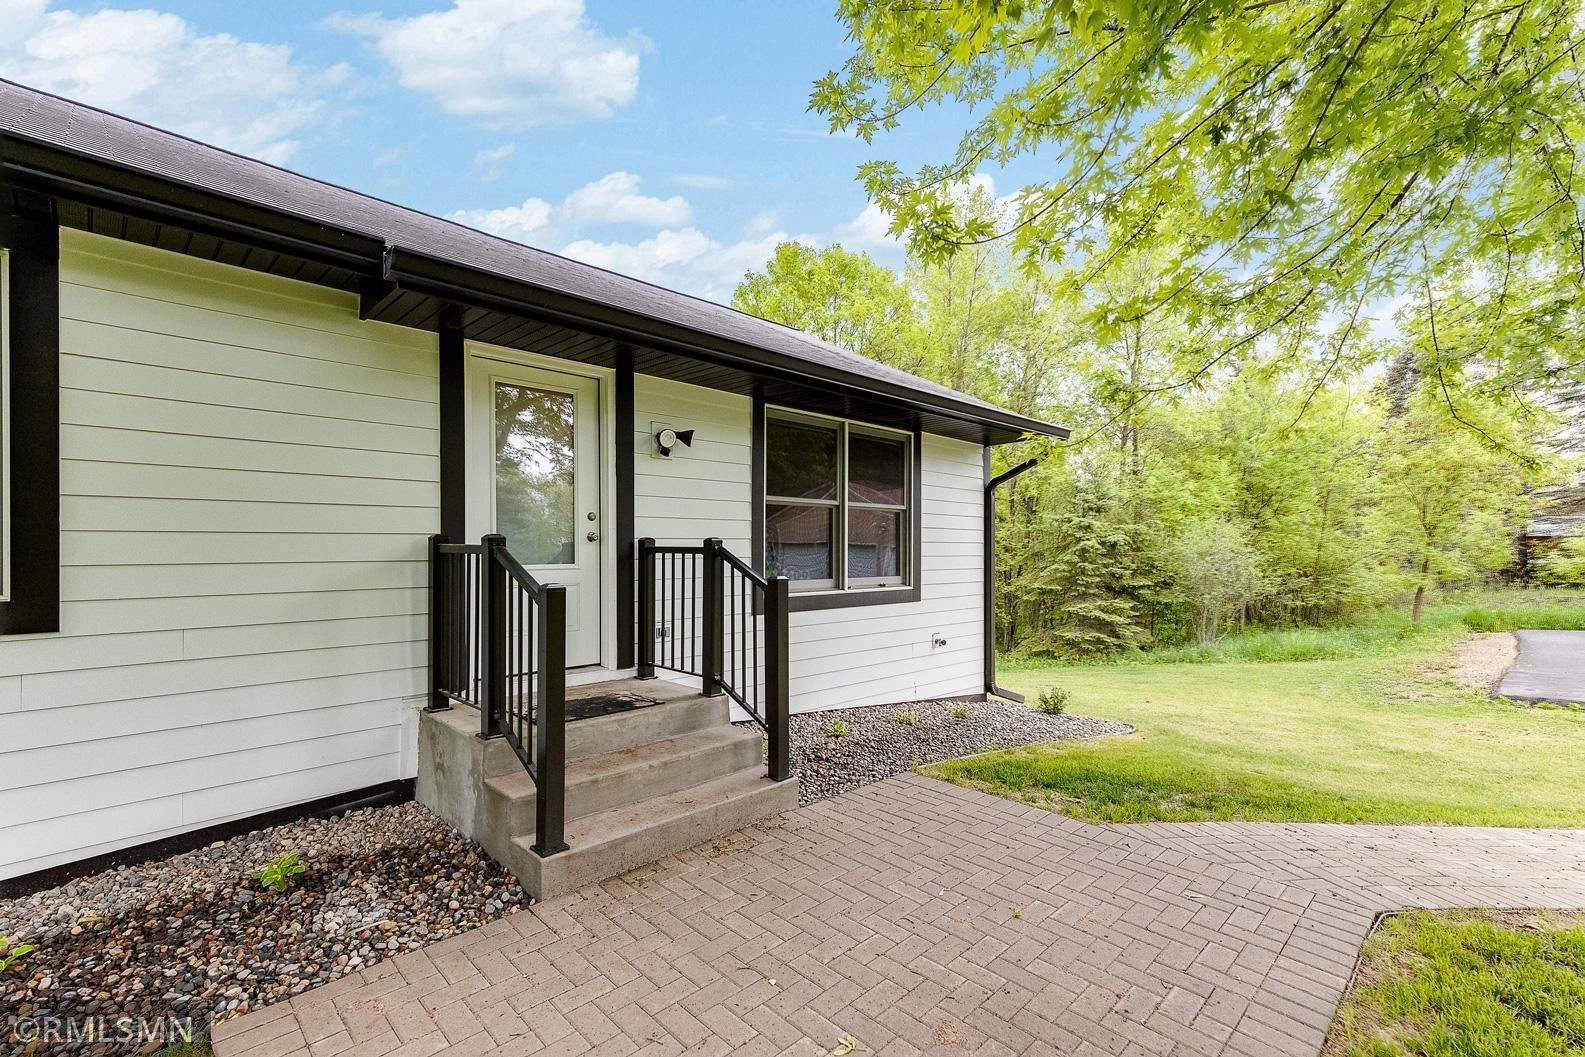 Photo of 29925 Ivywood Trail, Chisago City, MN 55013 (MLS # 5753803)